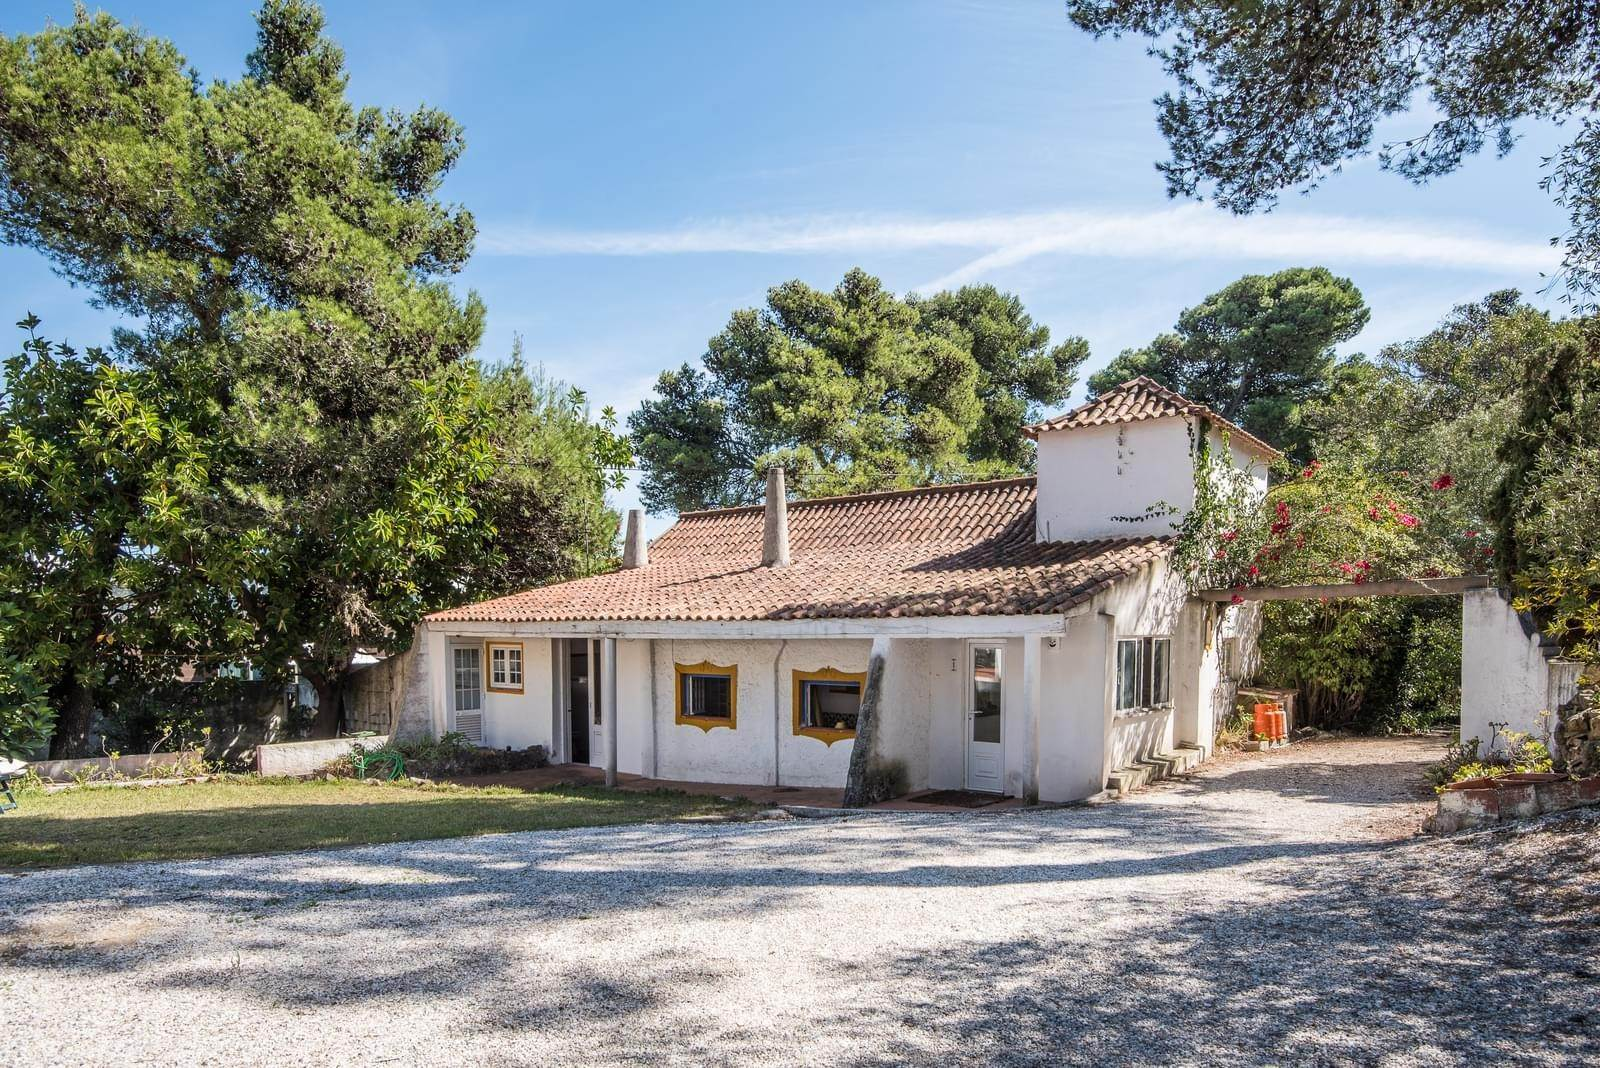 3. 別墅 / 联排别墅 為 出售 在 Unique property, located next to Quinta da Marinha, a quiet area.The property comprises six small villas, with deep refu... Cascais, 葡萄牙